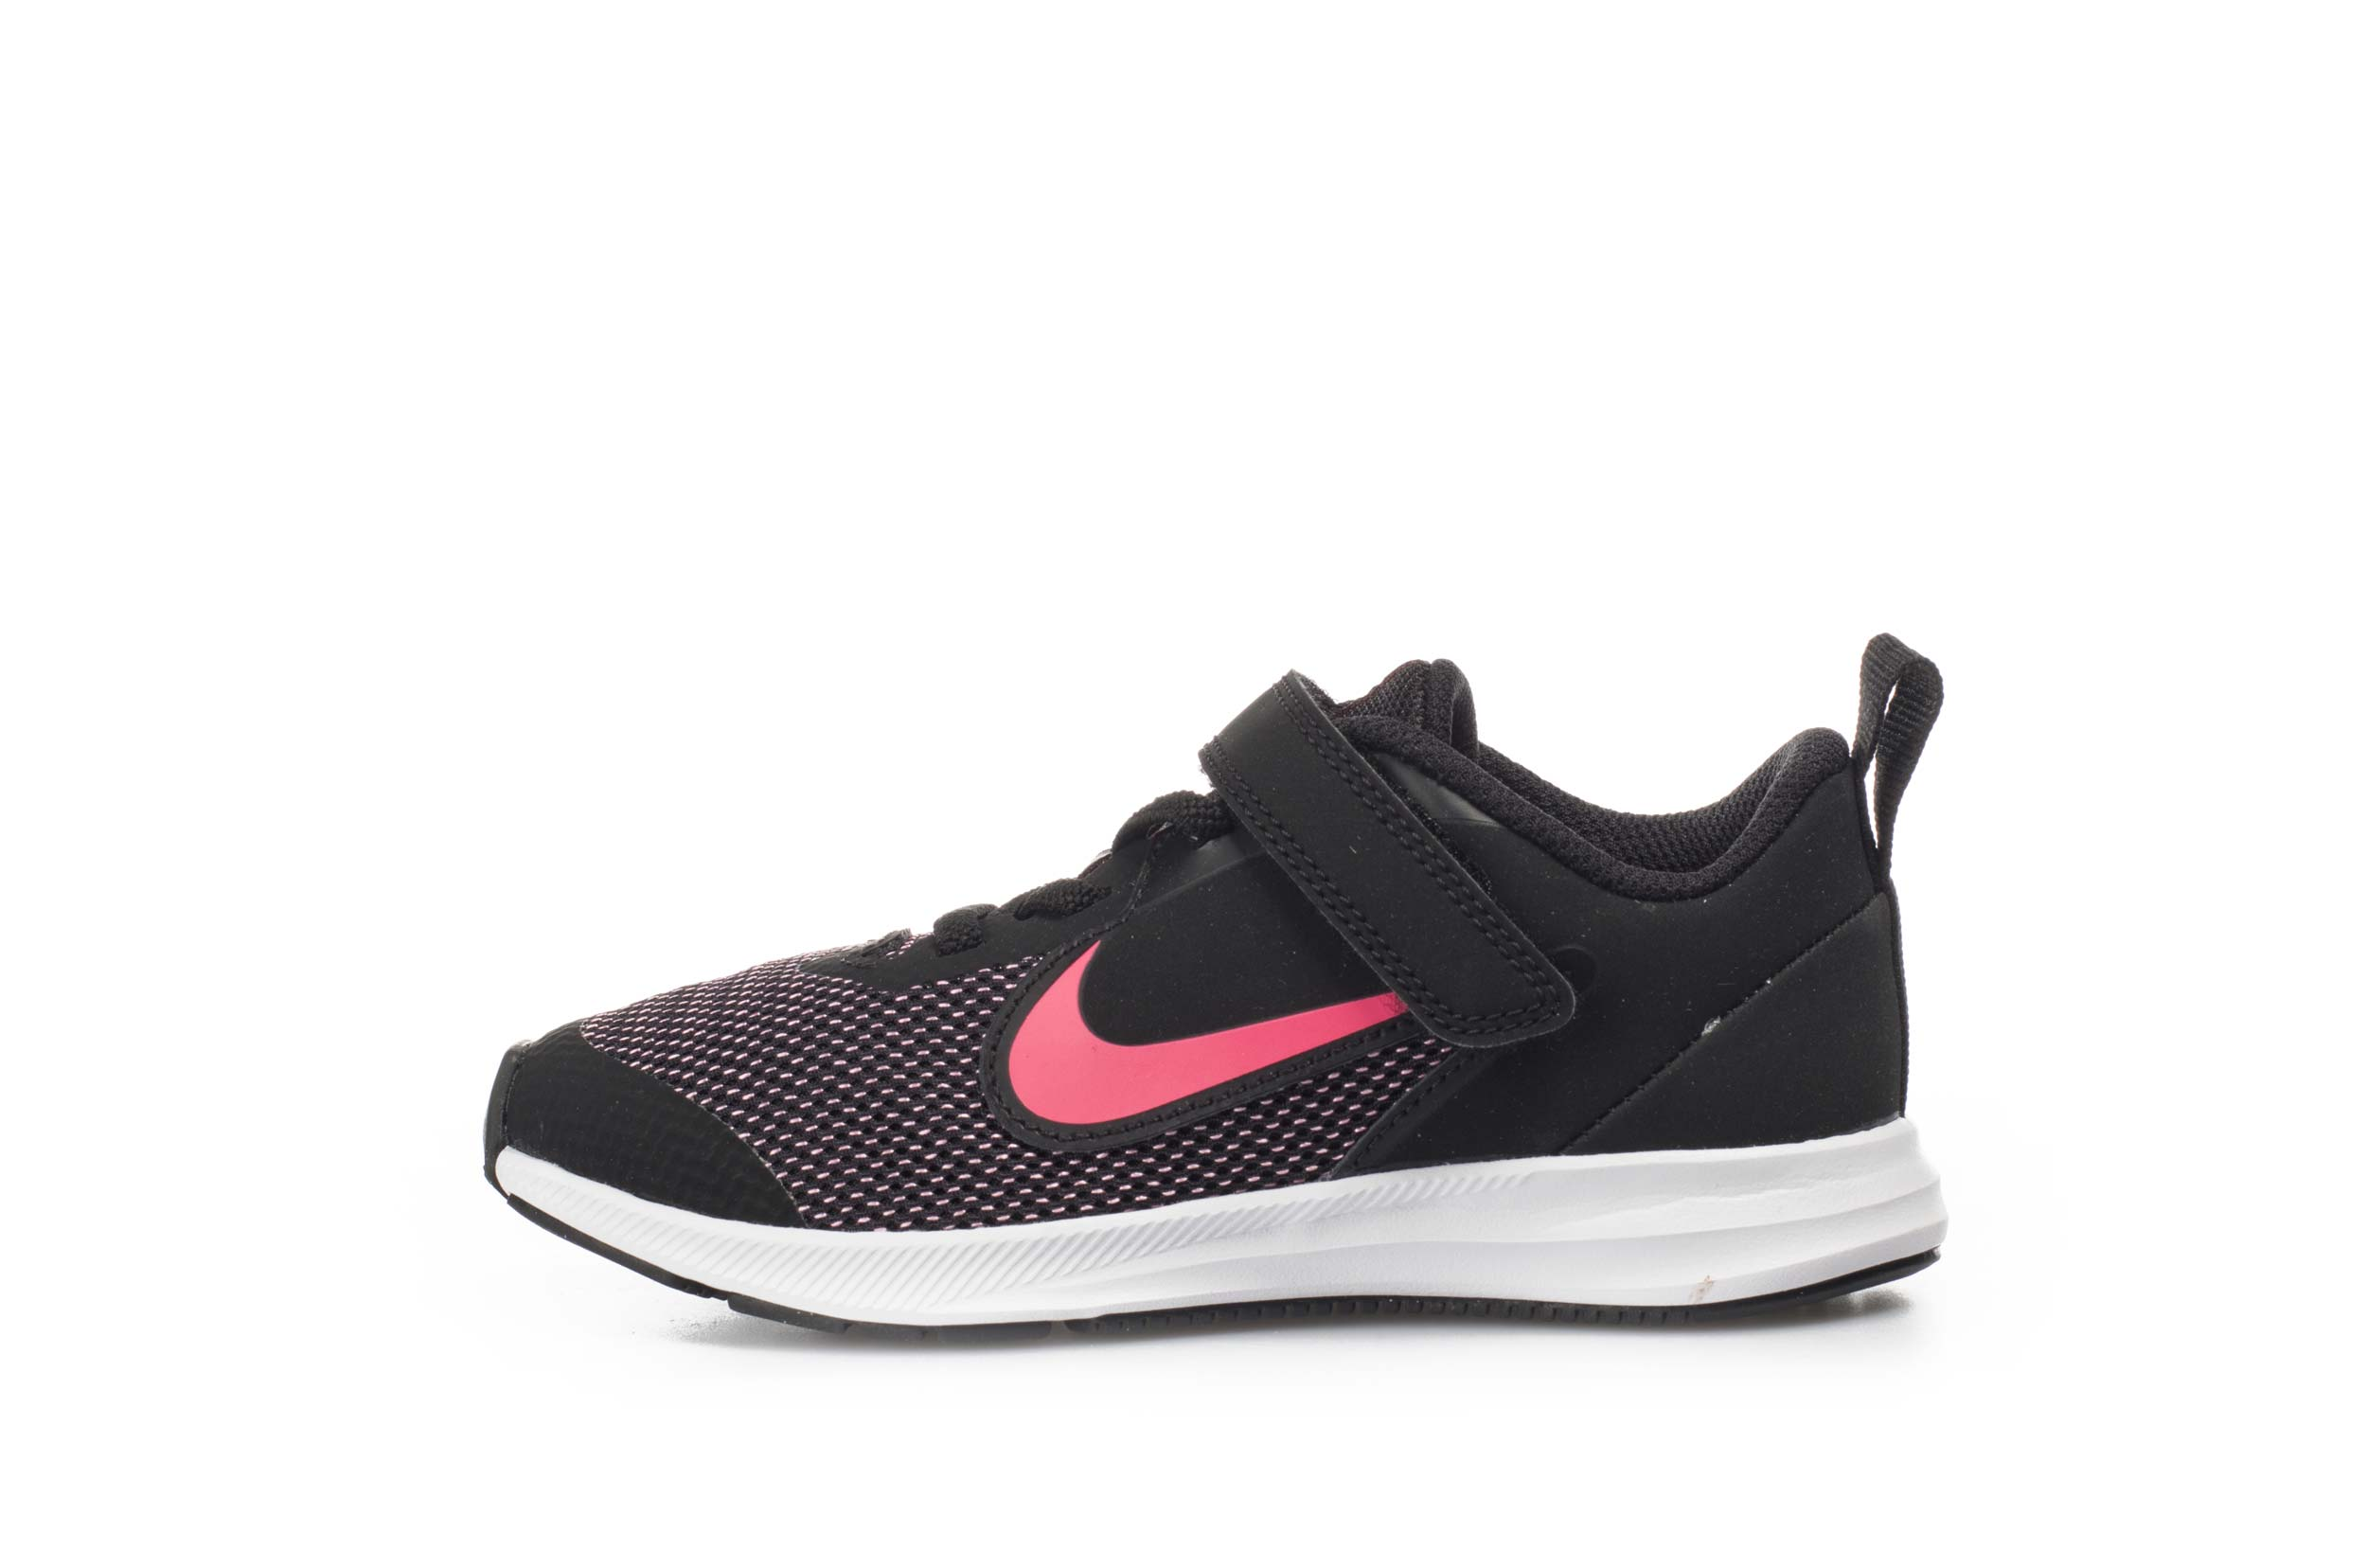 NIKE DOWNSHIFTER 9 PS AR4138-003 Μαύρο